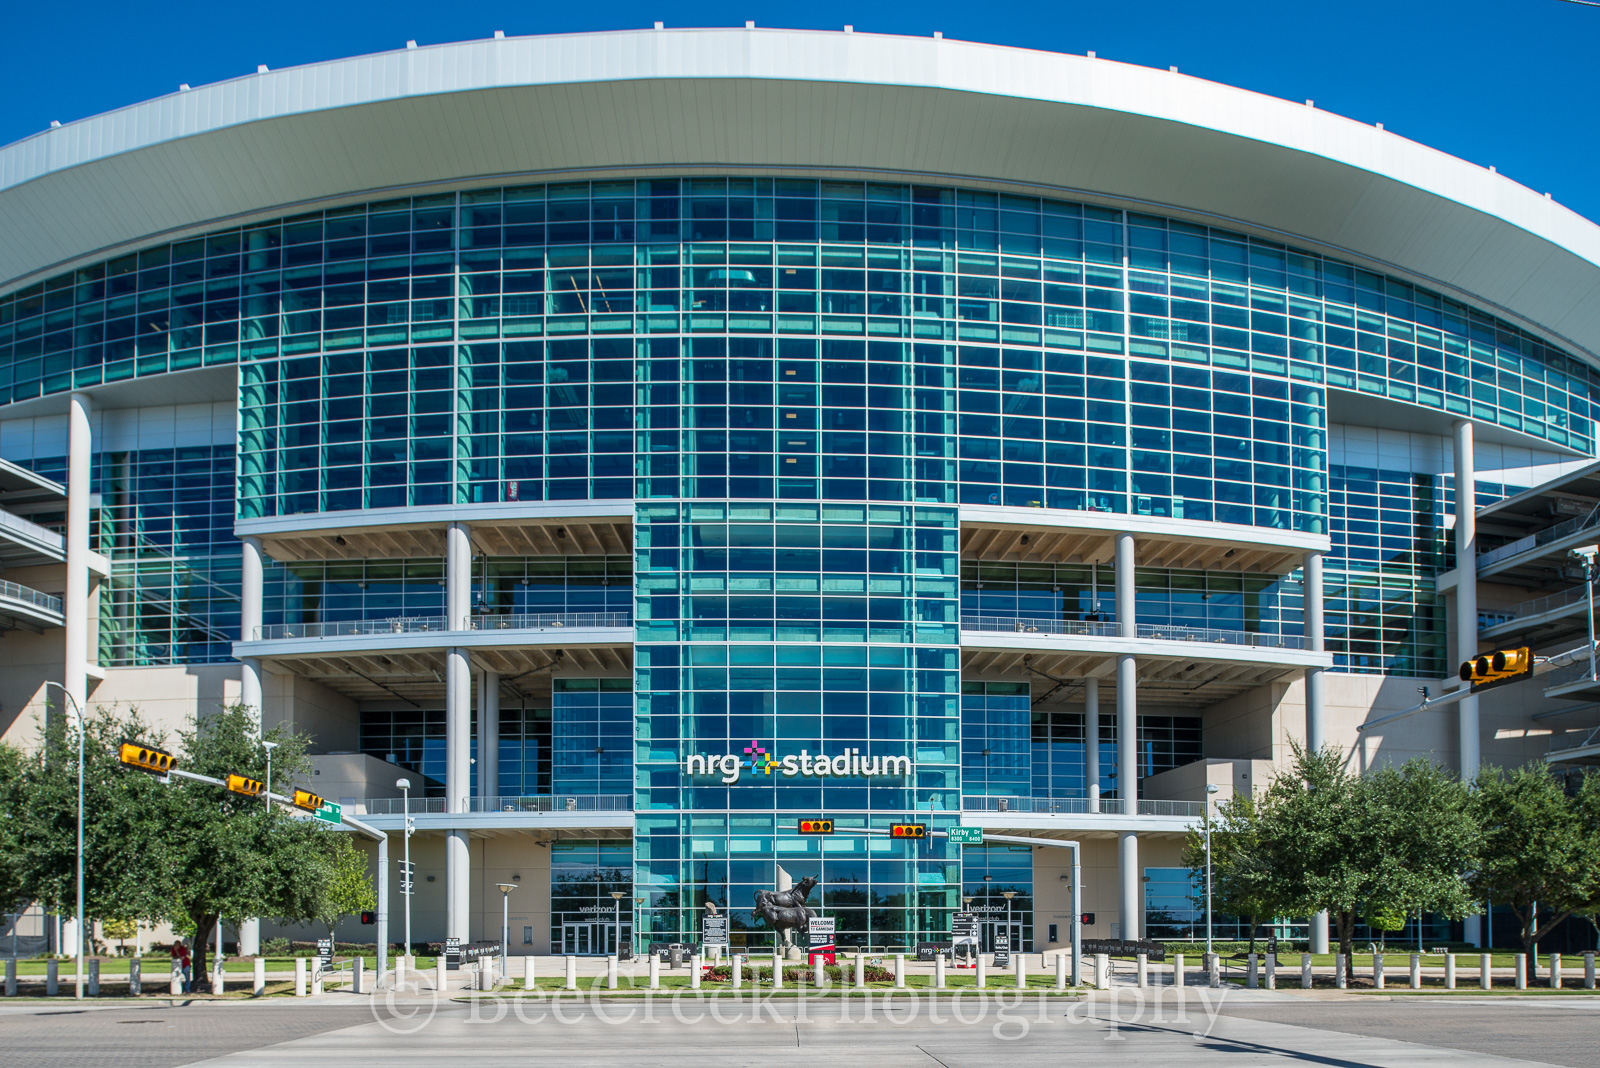 Houston, NRG Stadium, Texans, concerts, downtown, events, football, formerly Reliant, rodeos, sports, photo